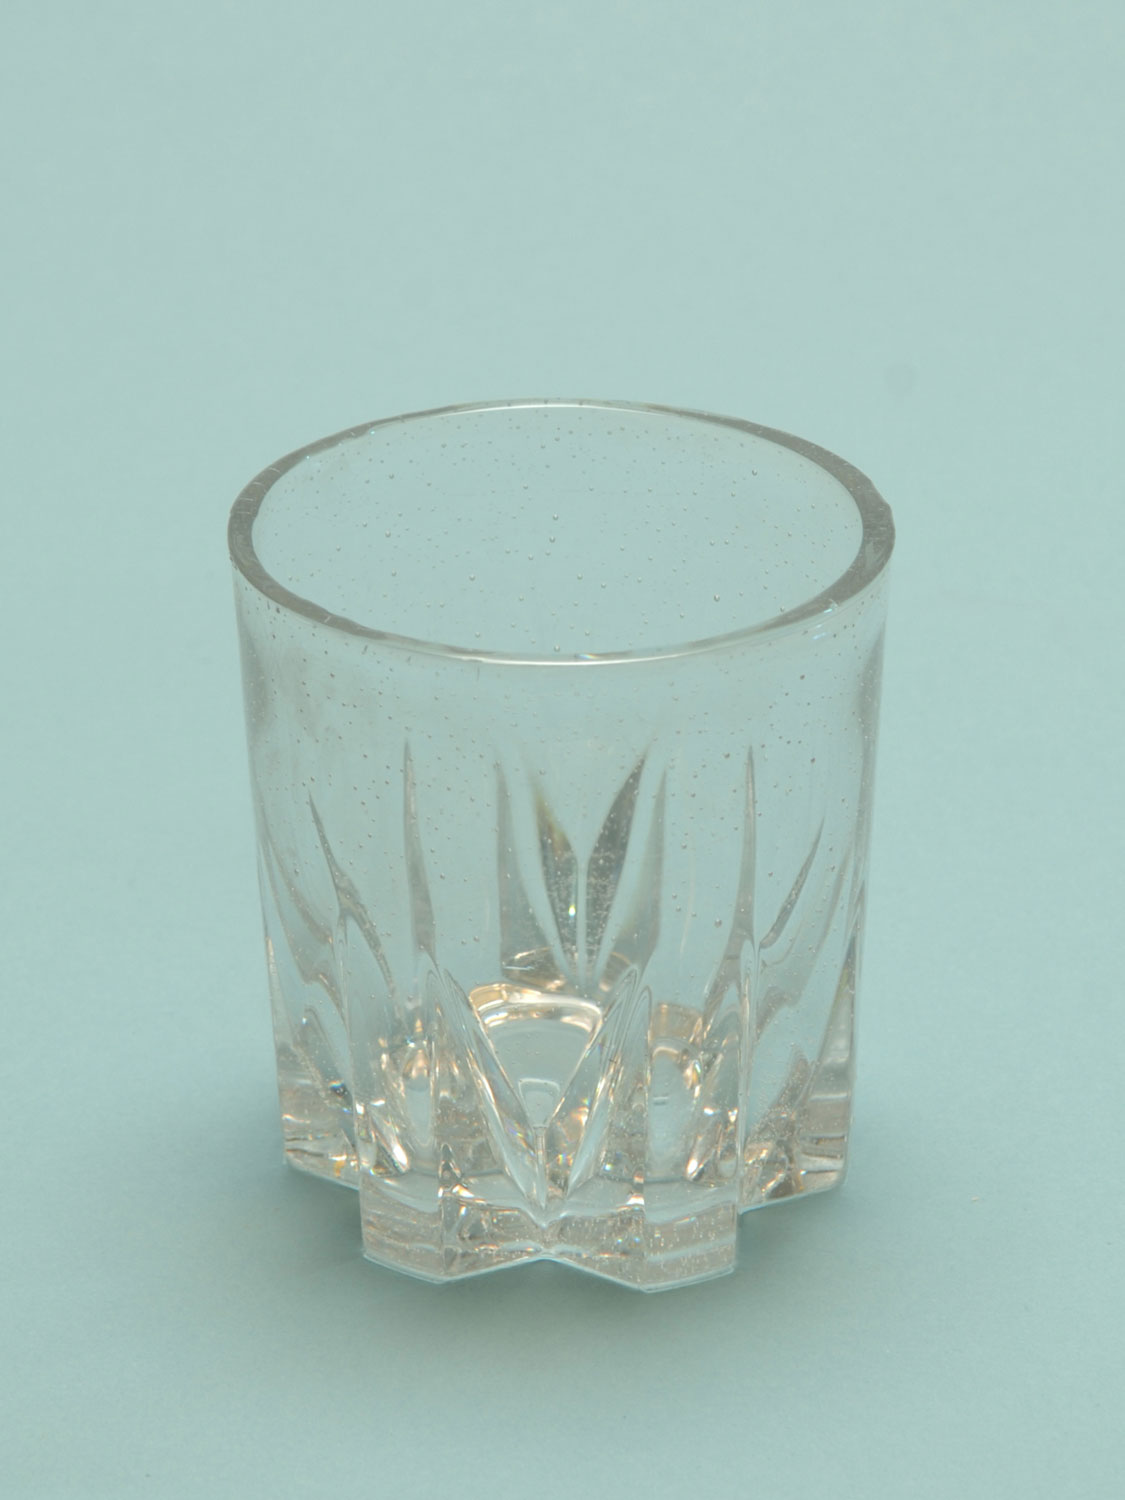 Safety glass on your film set! Whiskey glass with star bottom. Size: 9 x 8.3 cm.